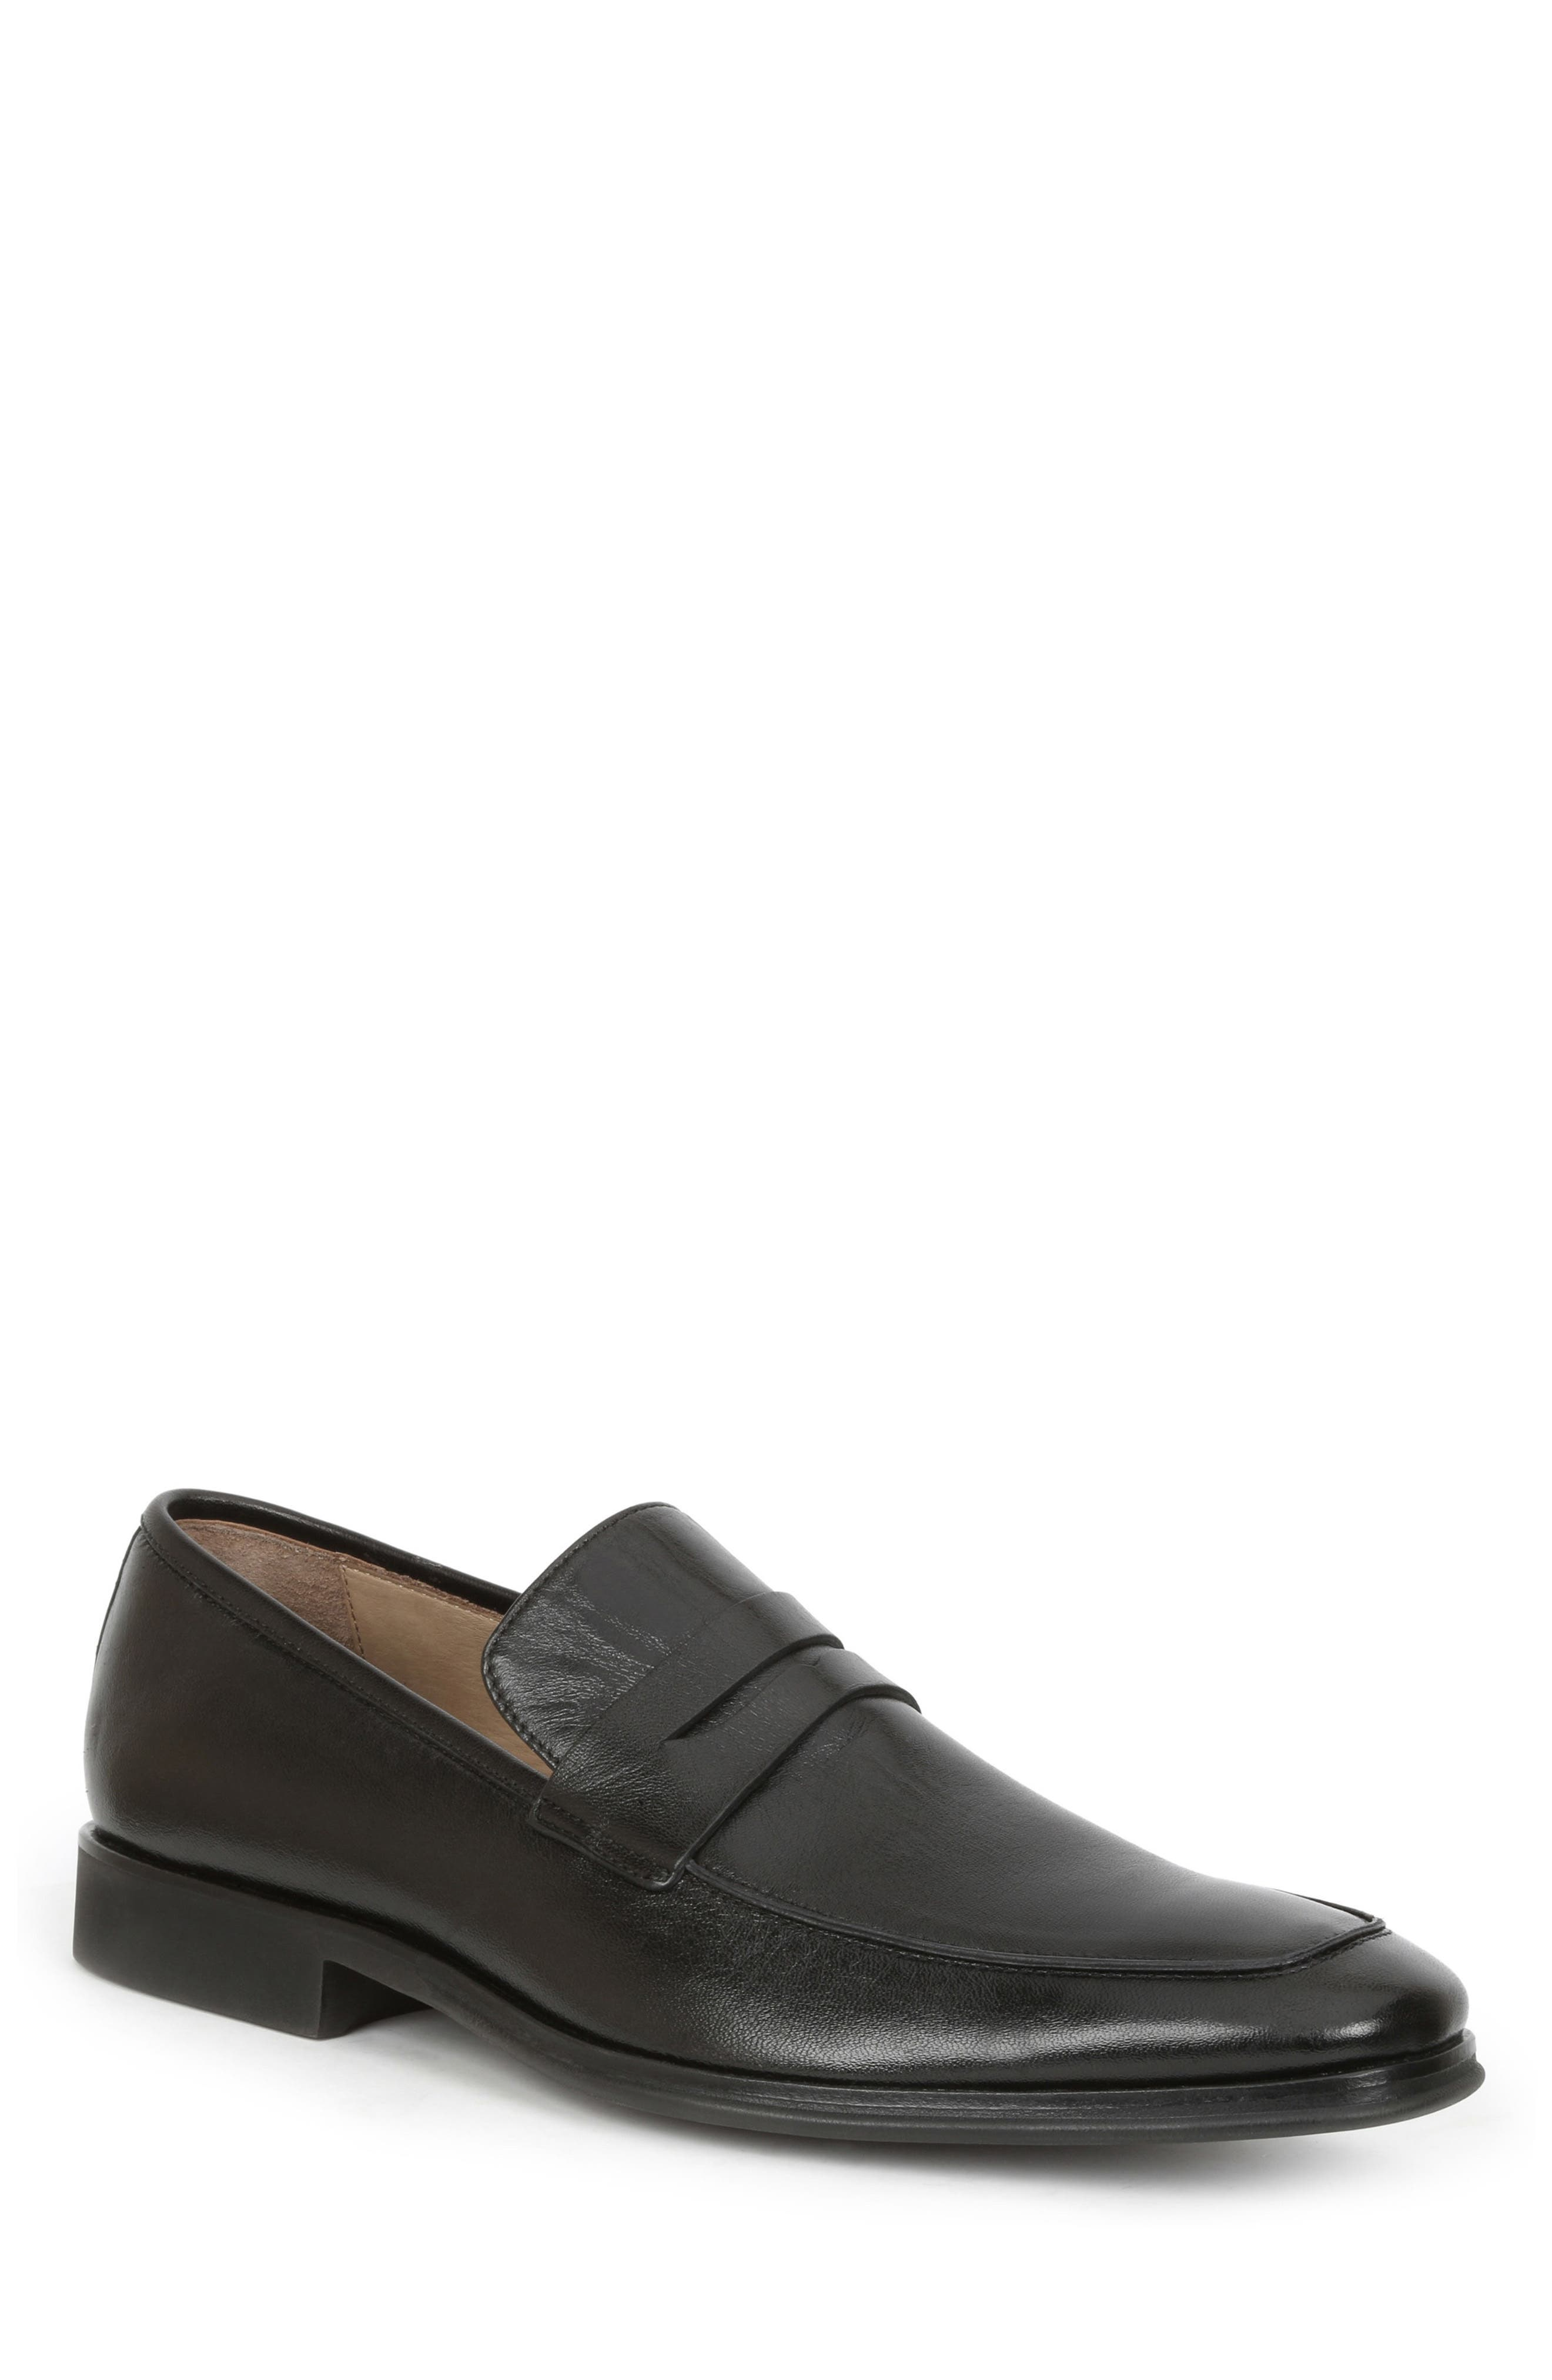 Ragusa Penny Loafer,                         Main,                         color,